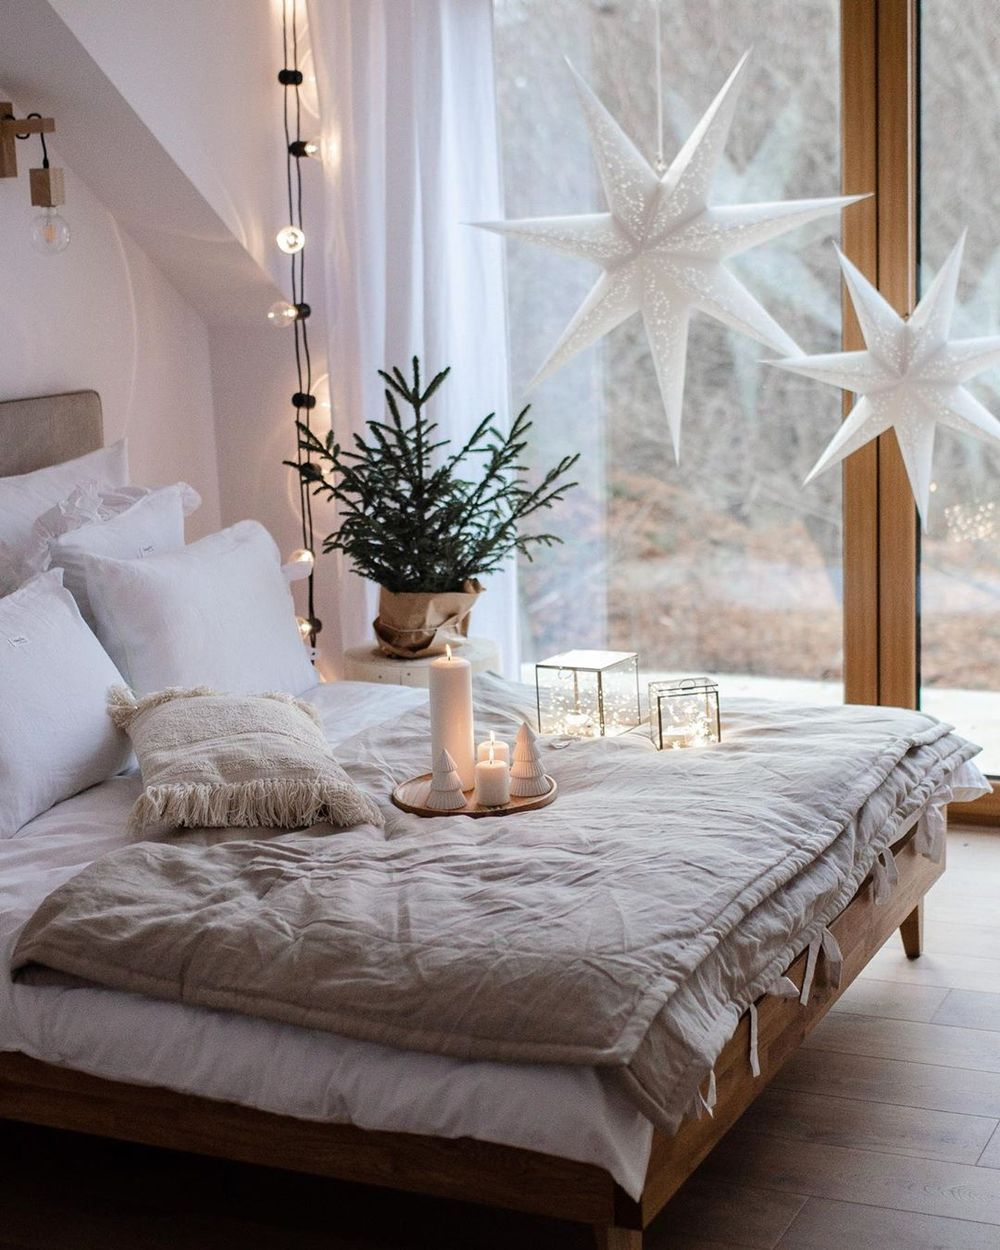 12 Scandinavian Christmas Bedroom Decor Ideas